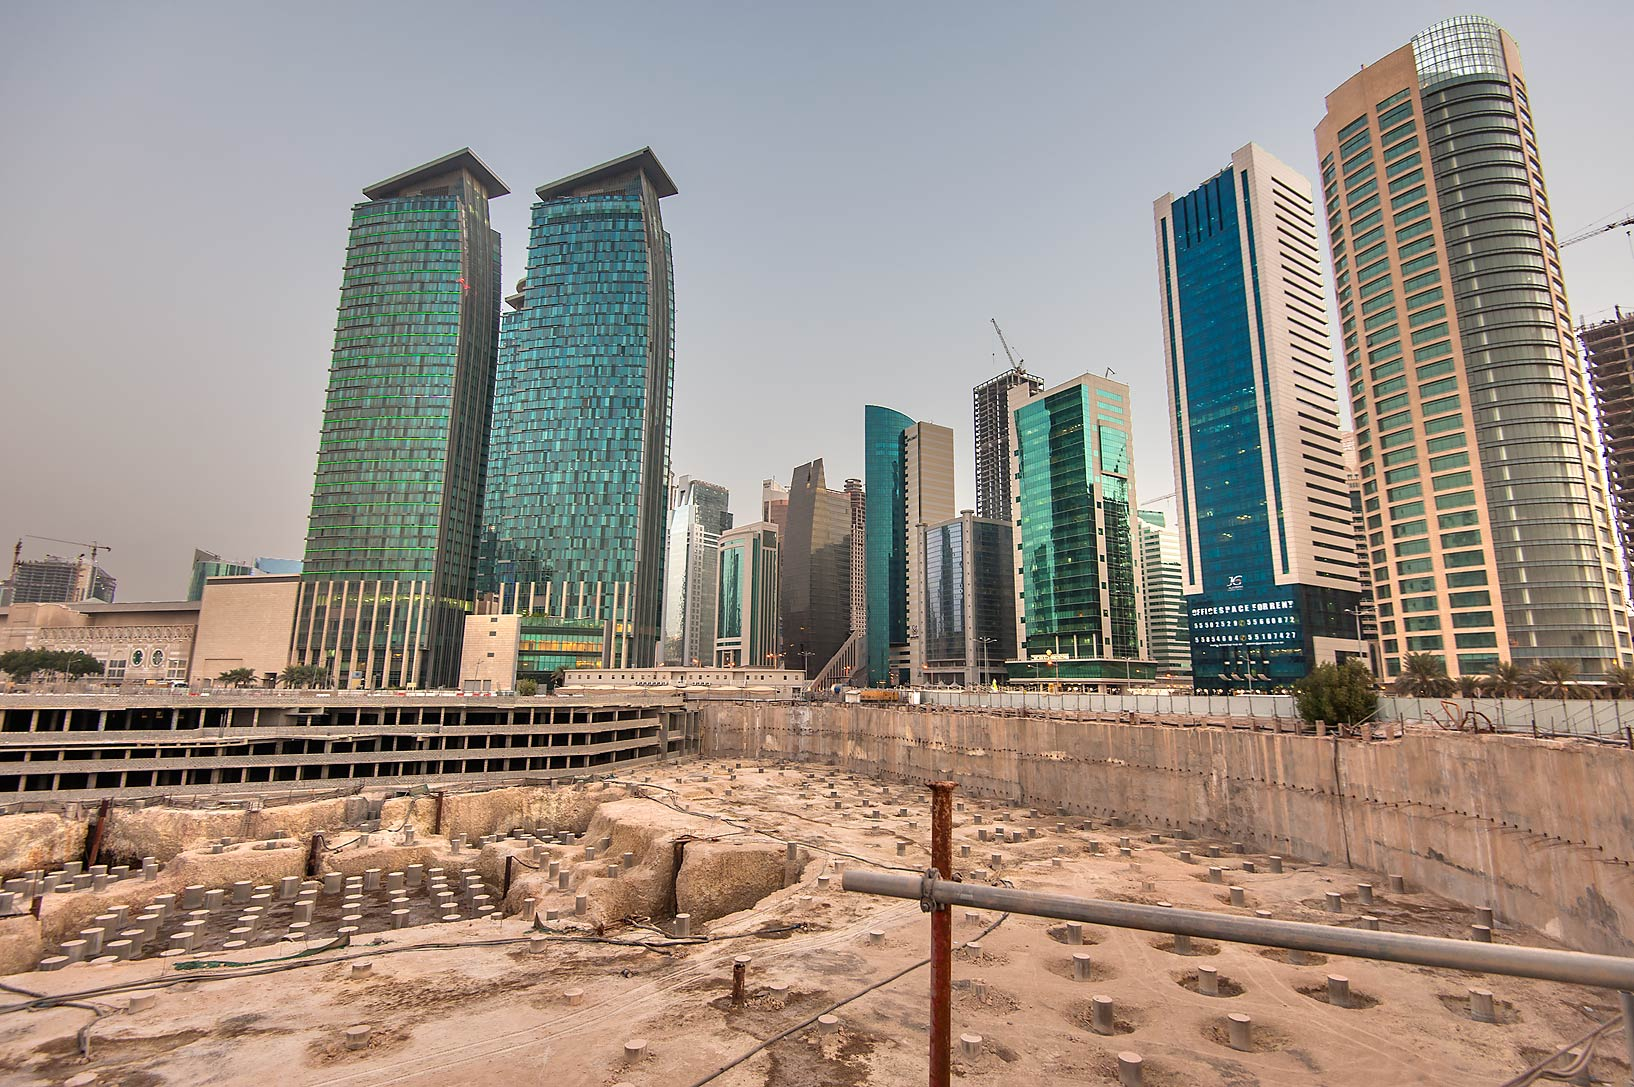 Doha Convention Center and Tower Project near Dafna Signal in West Bay. Doha, Qatar